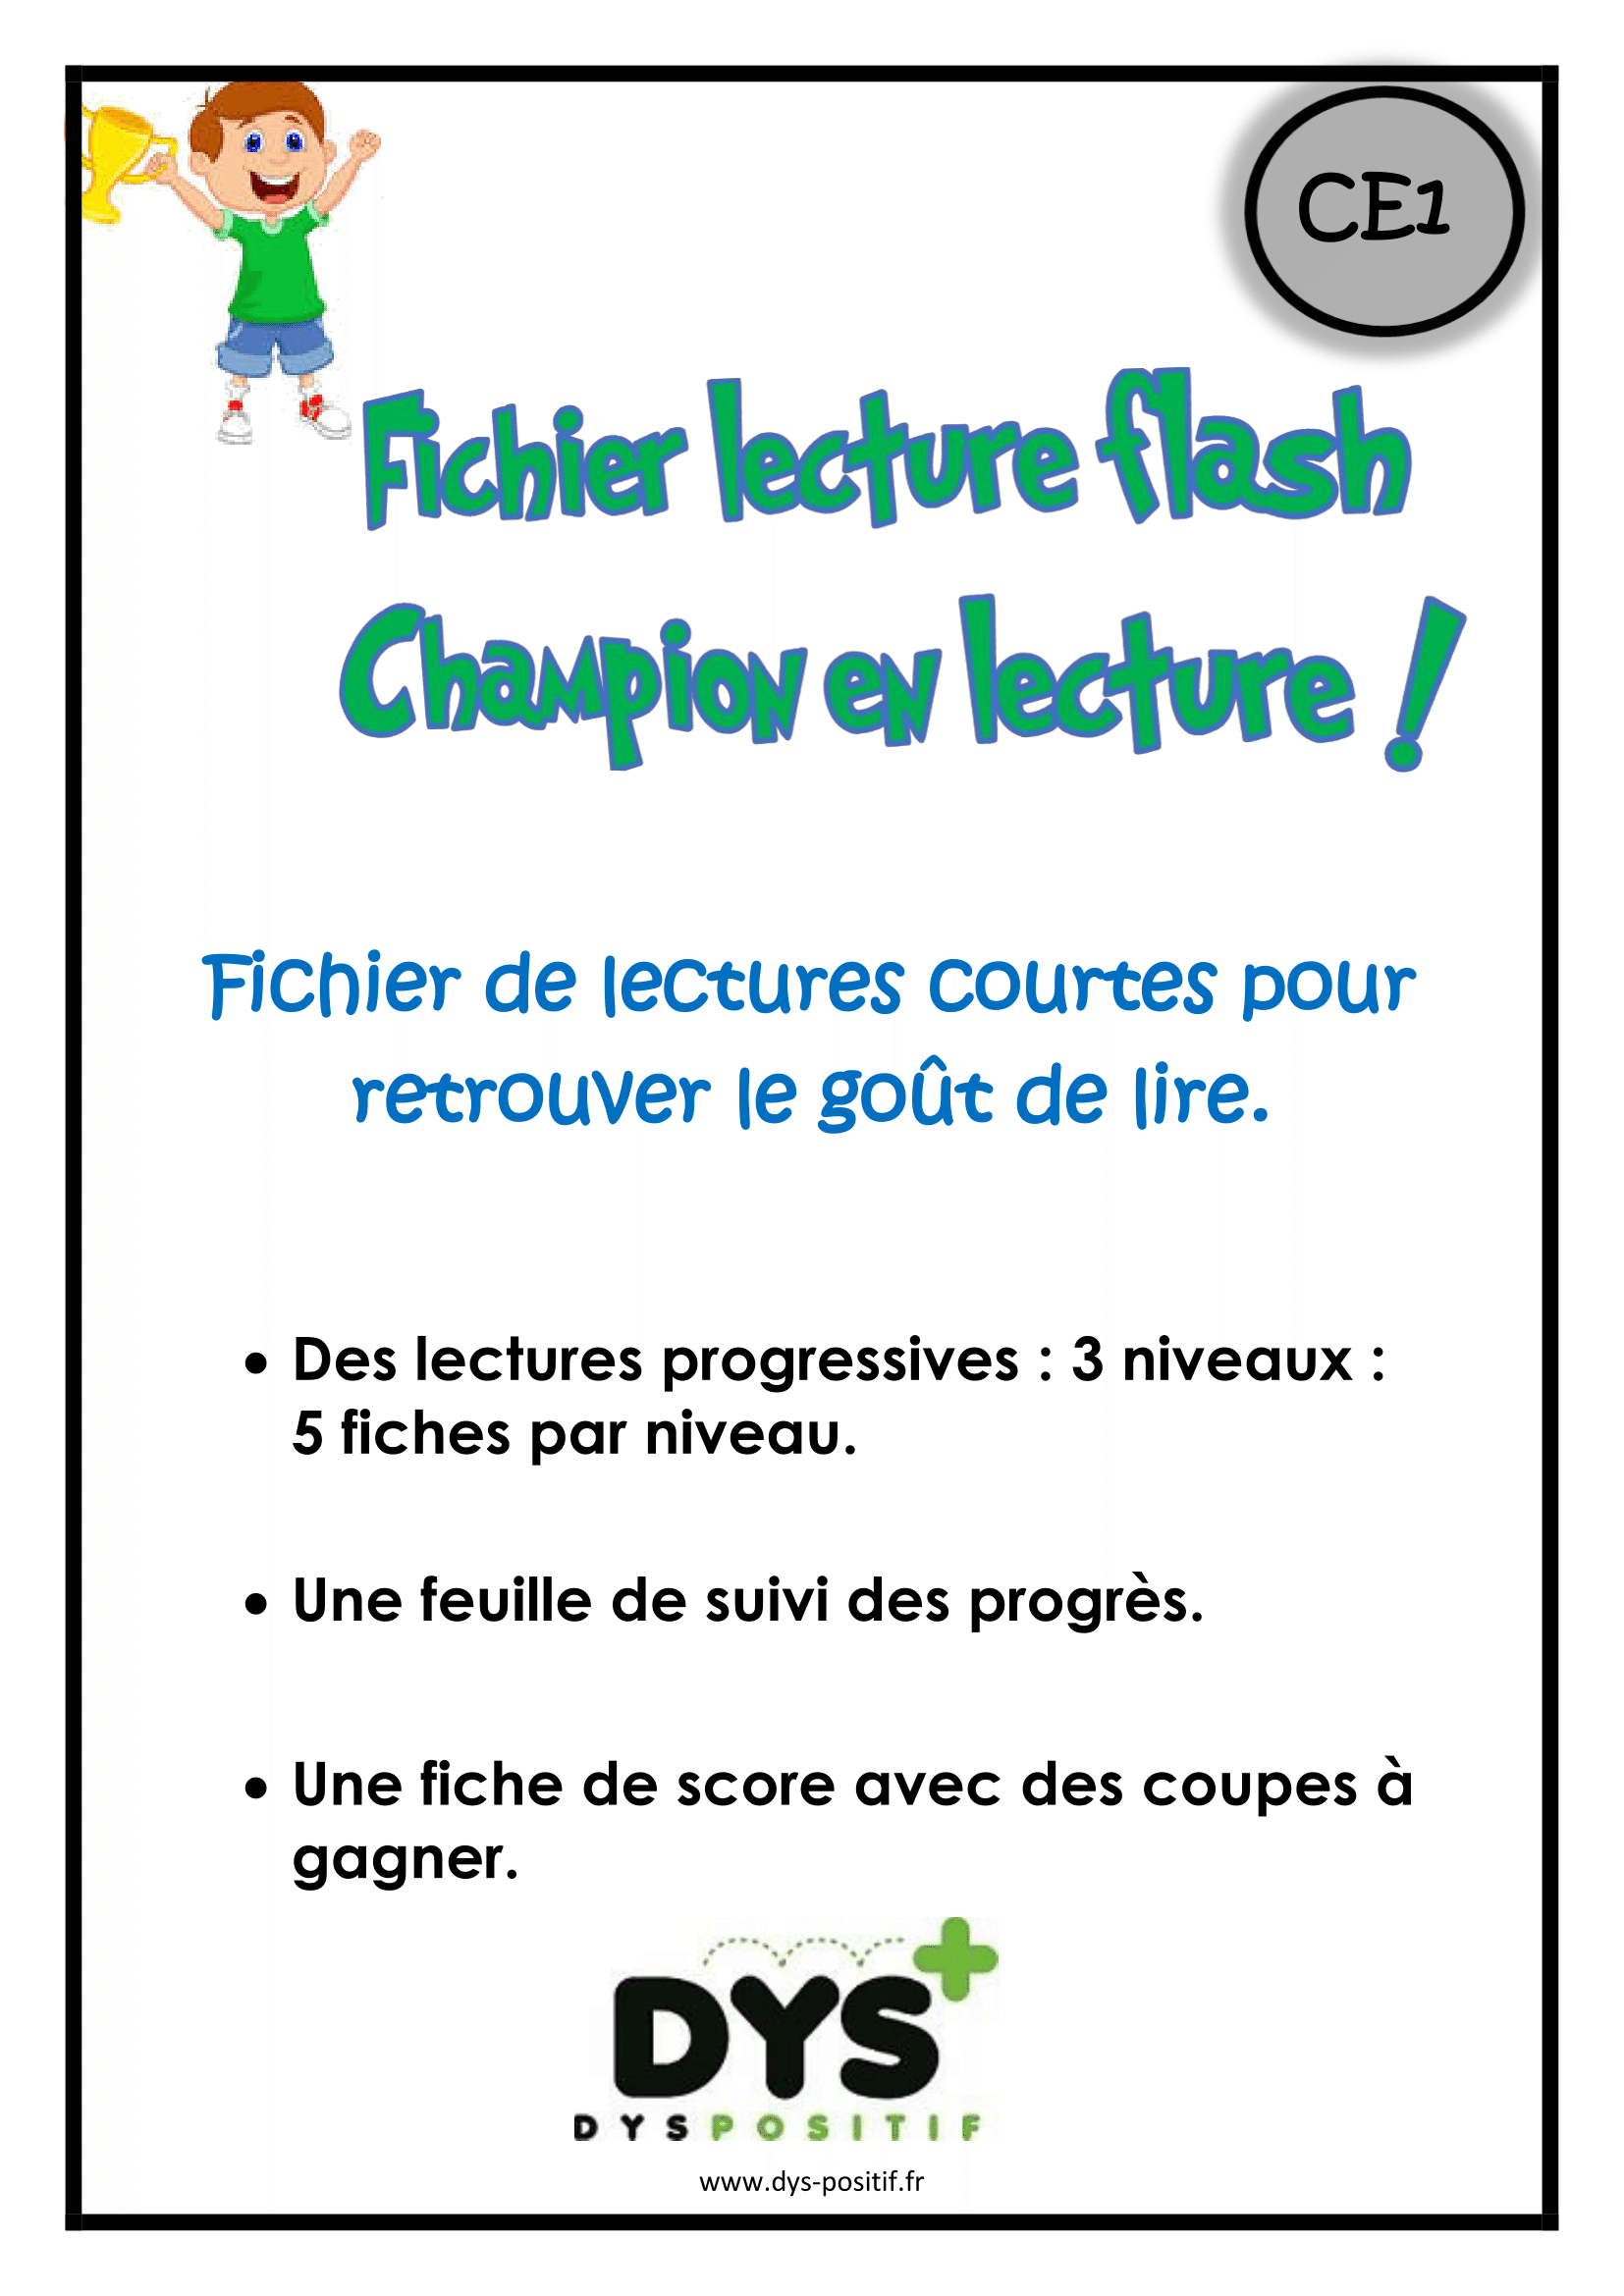 Lecture flash CE1